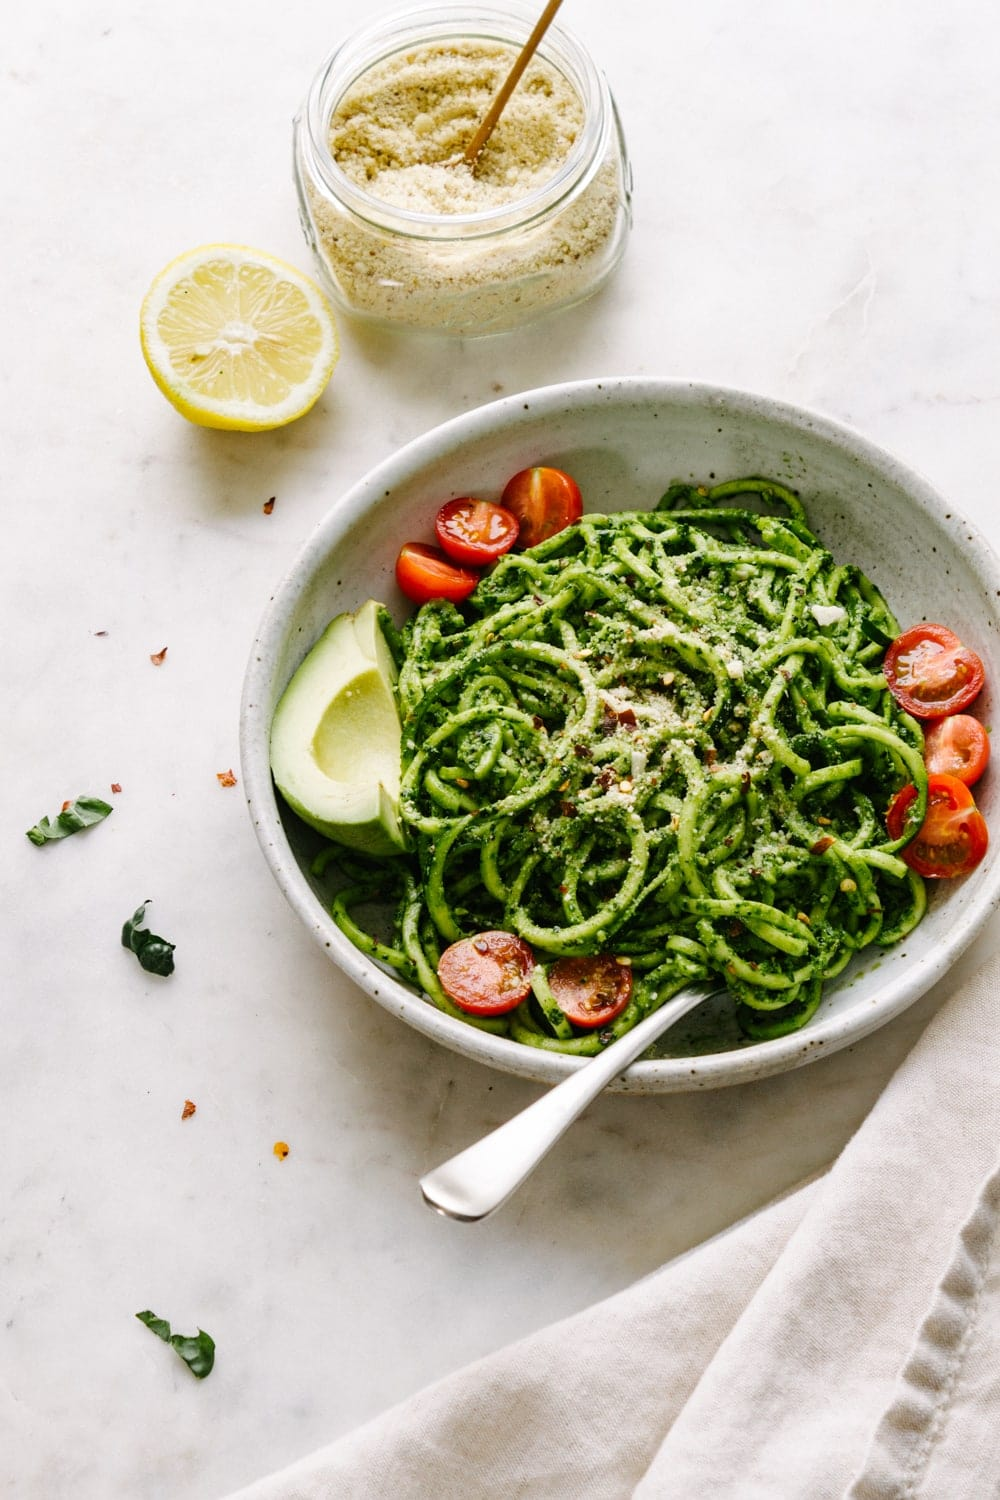 a side view of a bowl of zucchini noodles tossed with spicy kale pesto